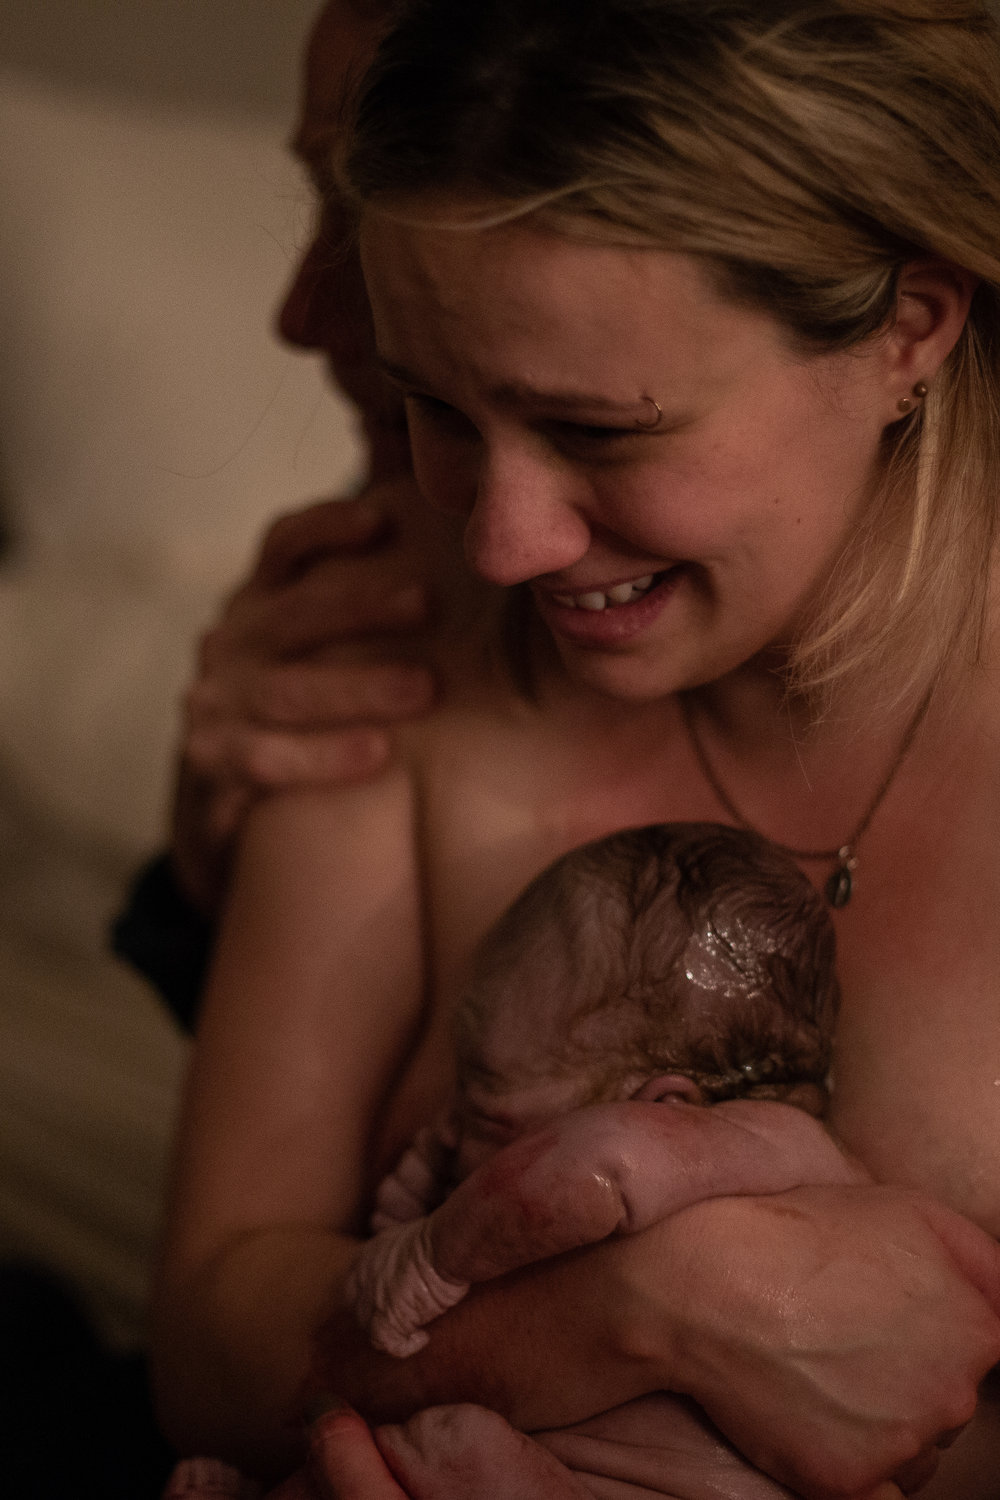 A new mother holds her baby for the first time and smiles widely.